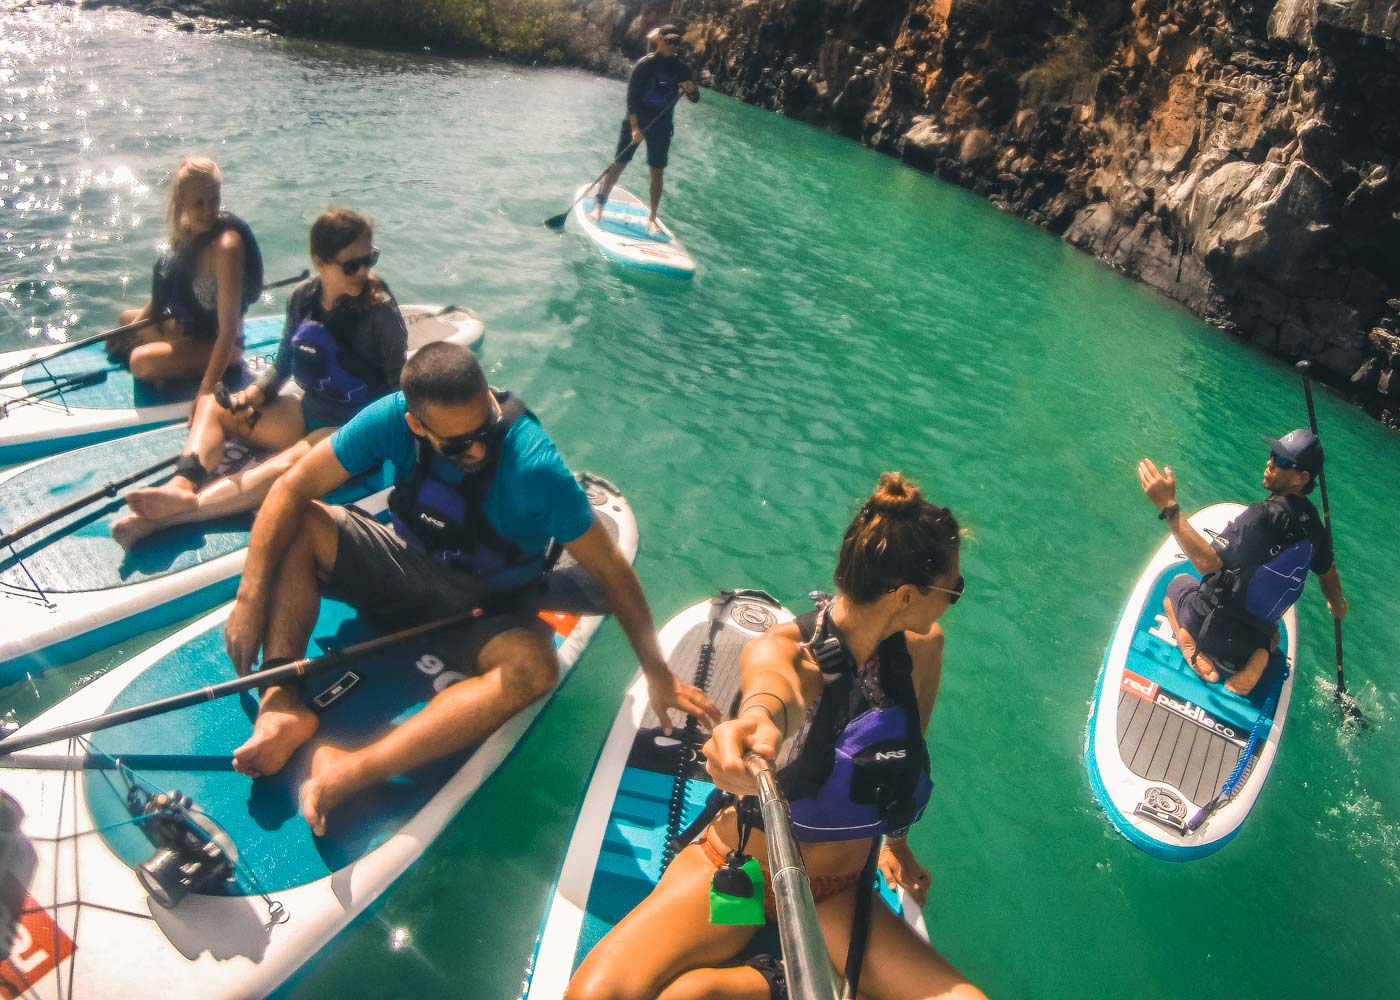 SUP adventures on Santa Cruz island with our Galakiwi group